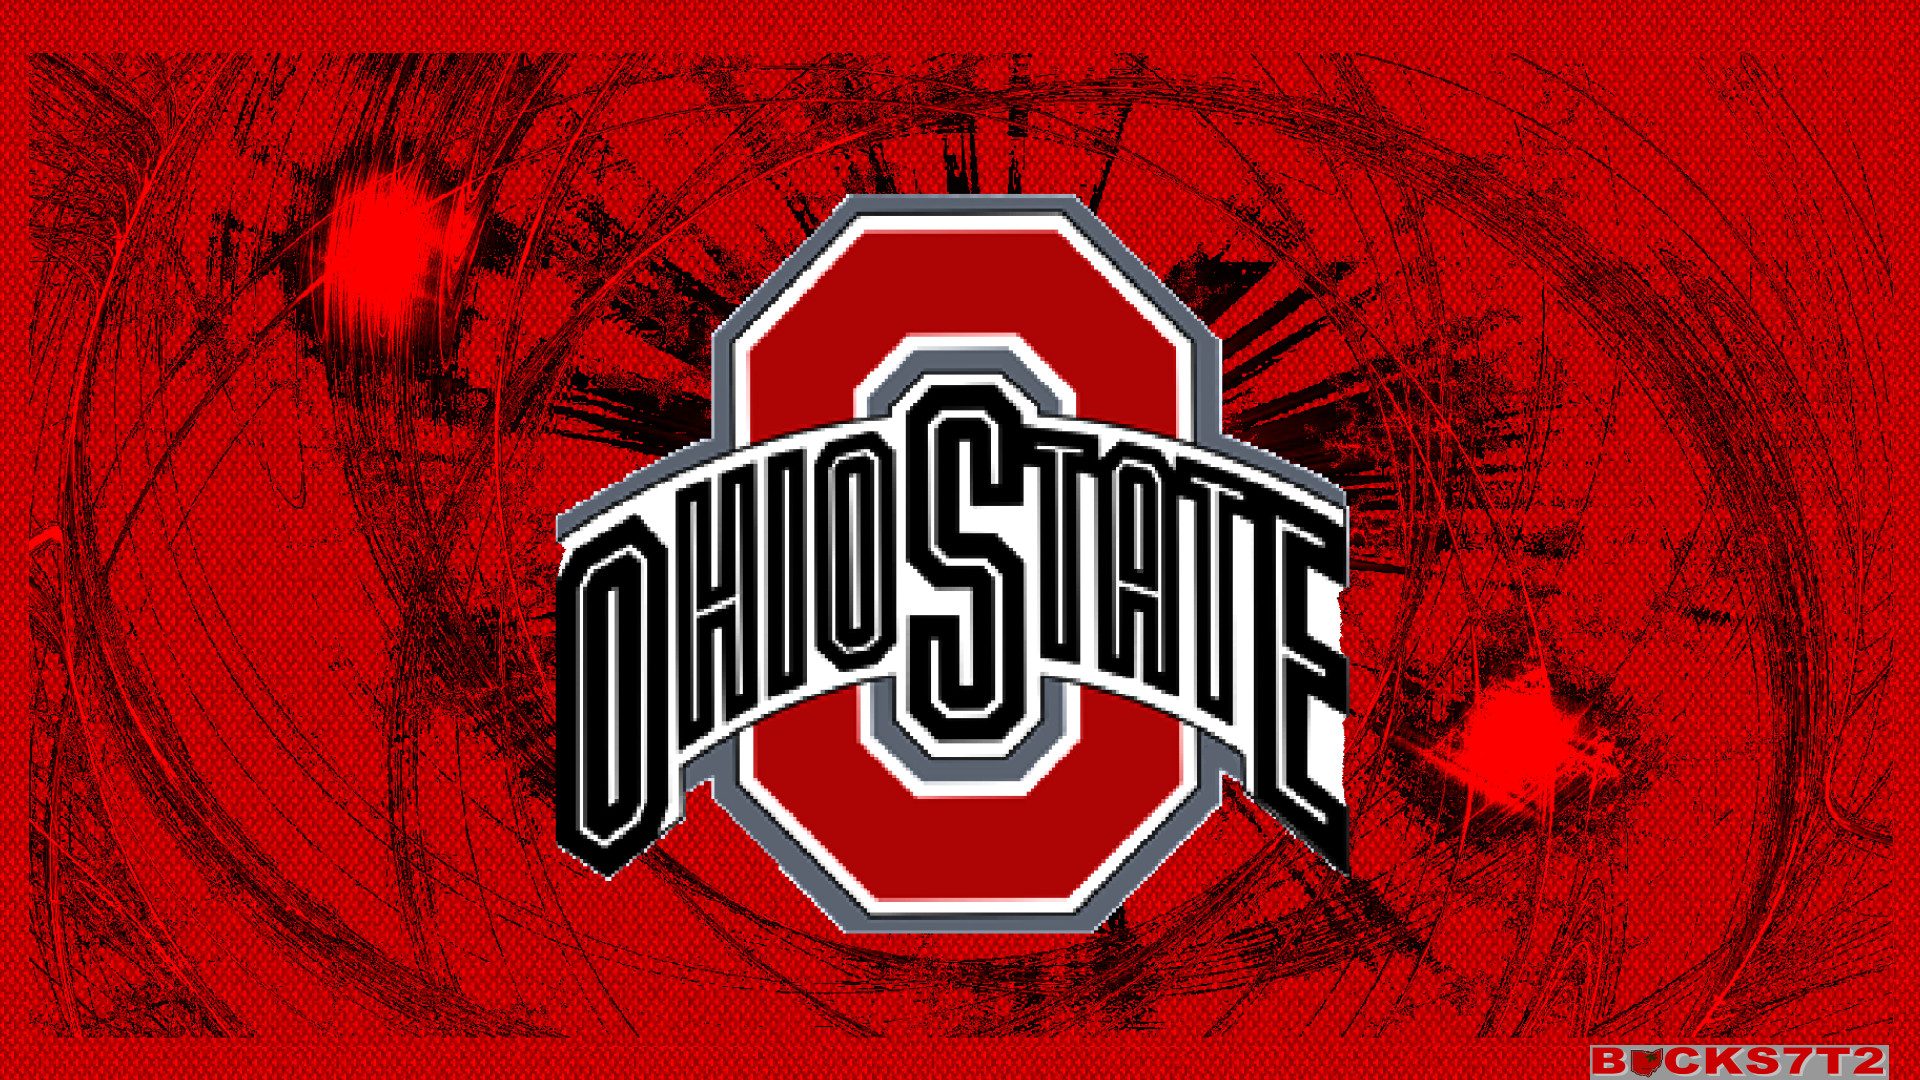 Ohio State University Wallpapers (68 Wallpapers)